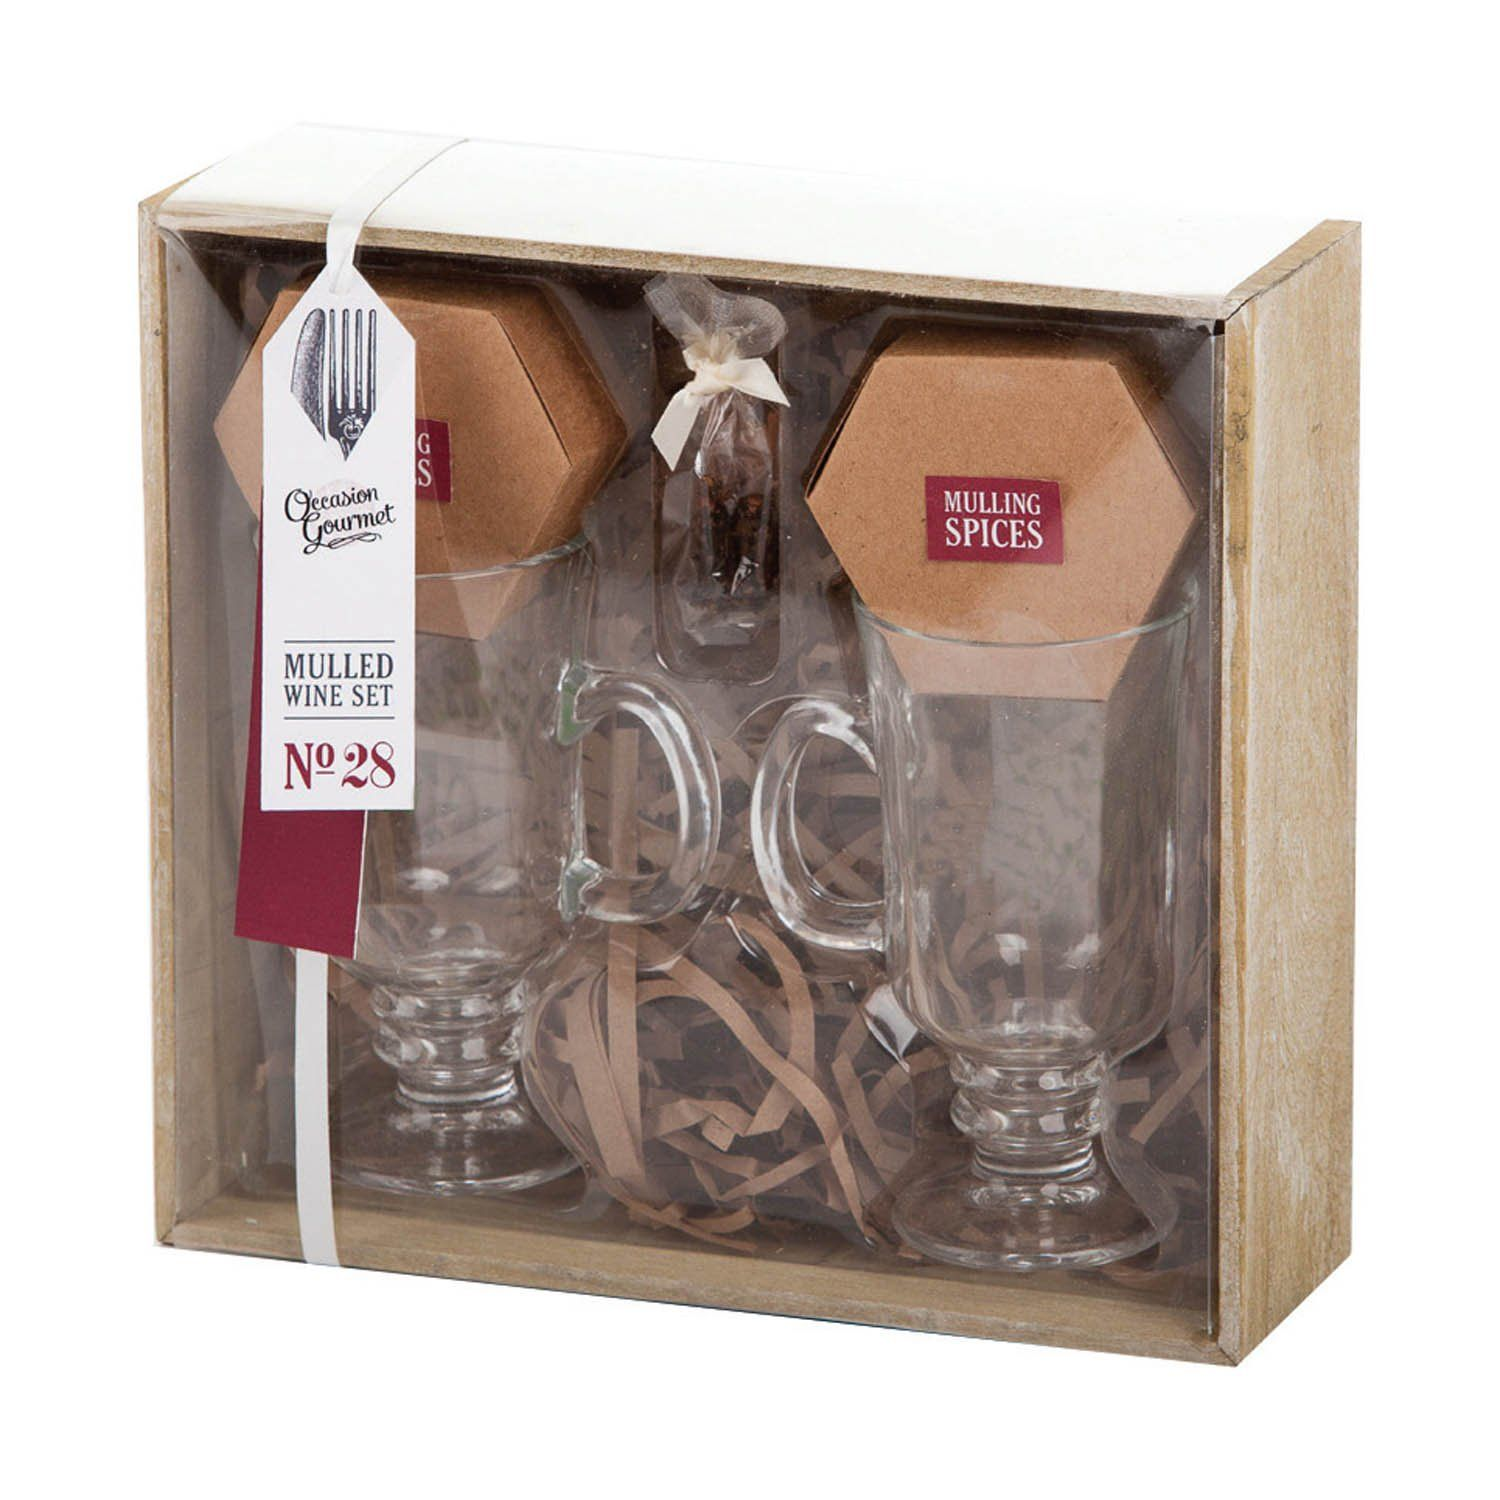 Mulled Wine Gift Set For Two With Spices In Wooden Gift Box By